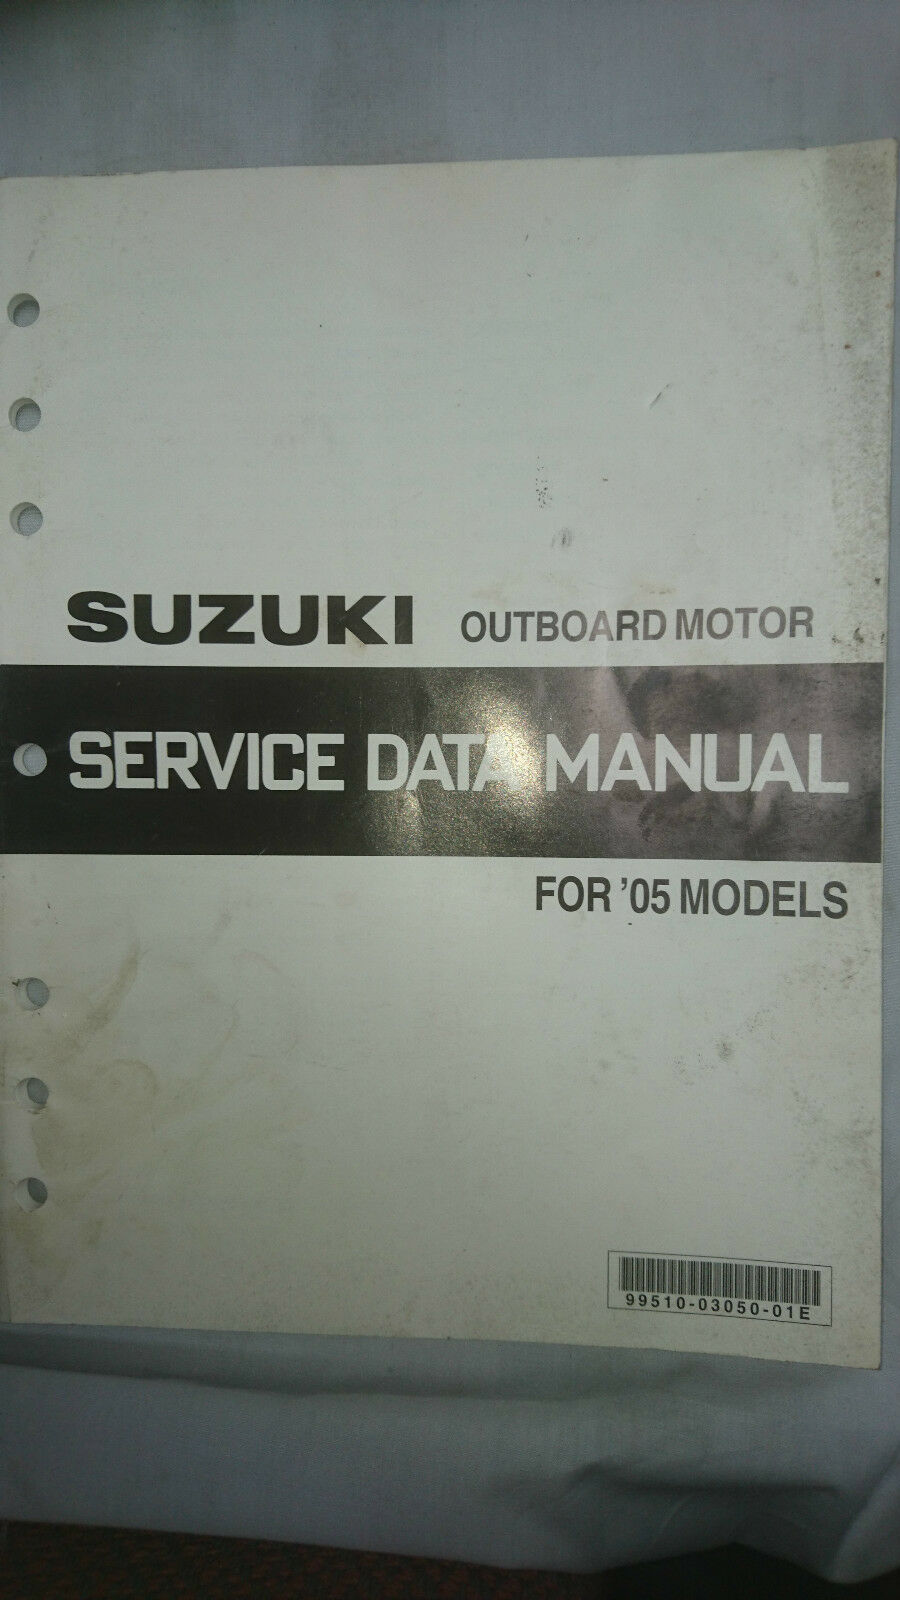 Suzuki Outboard Motor Service Data Manual 2005 Models 799 Df90 Wiring Diagram 1 Of 1only Available